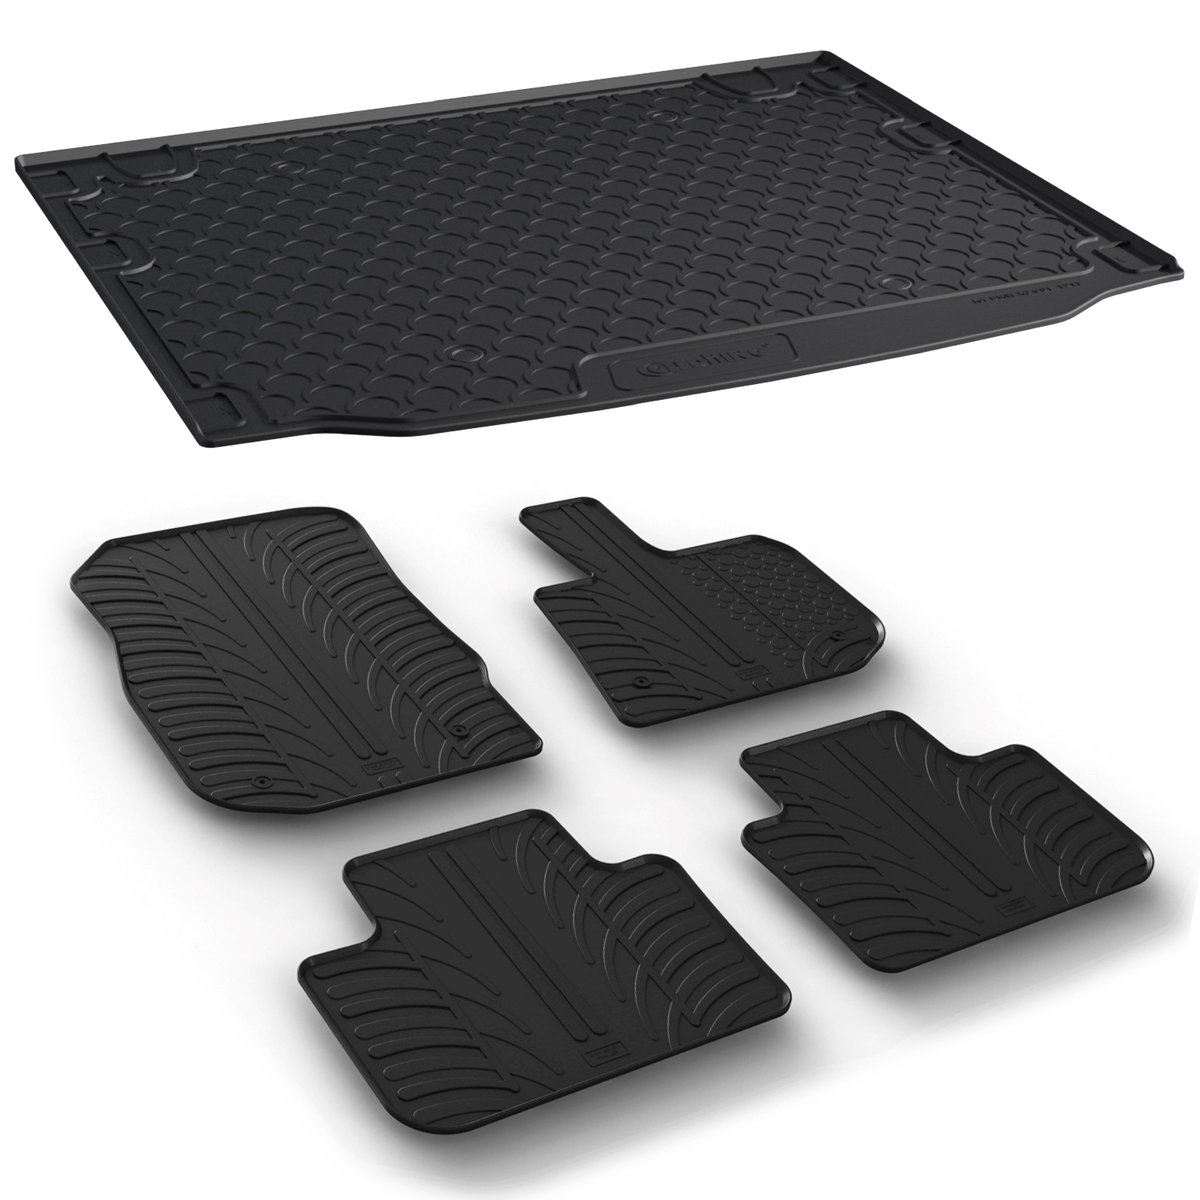 Gledring Tailored Rubber Floor Mats Set to fit BMW X3 G01 17-19 Moulded Fitted